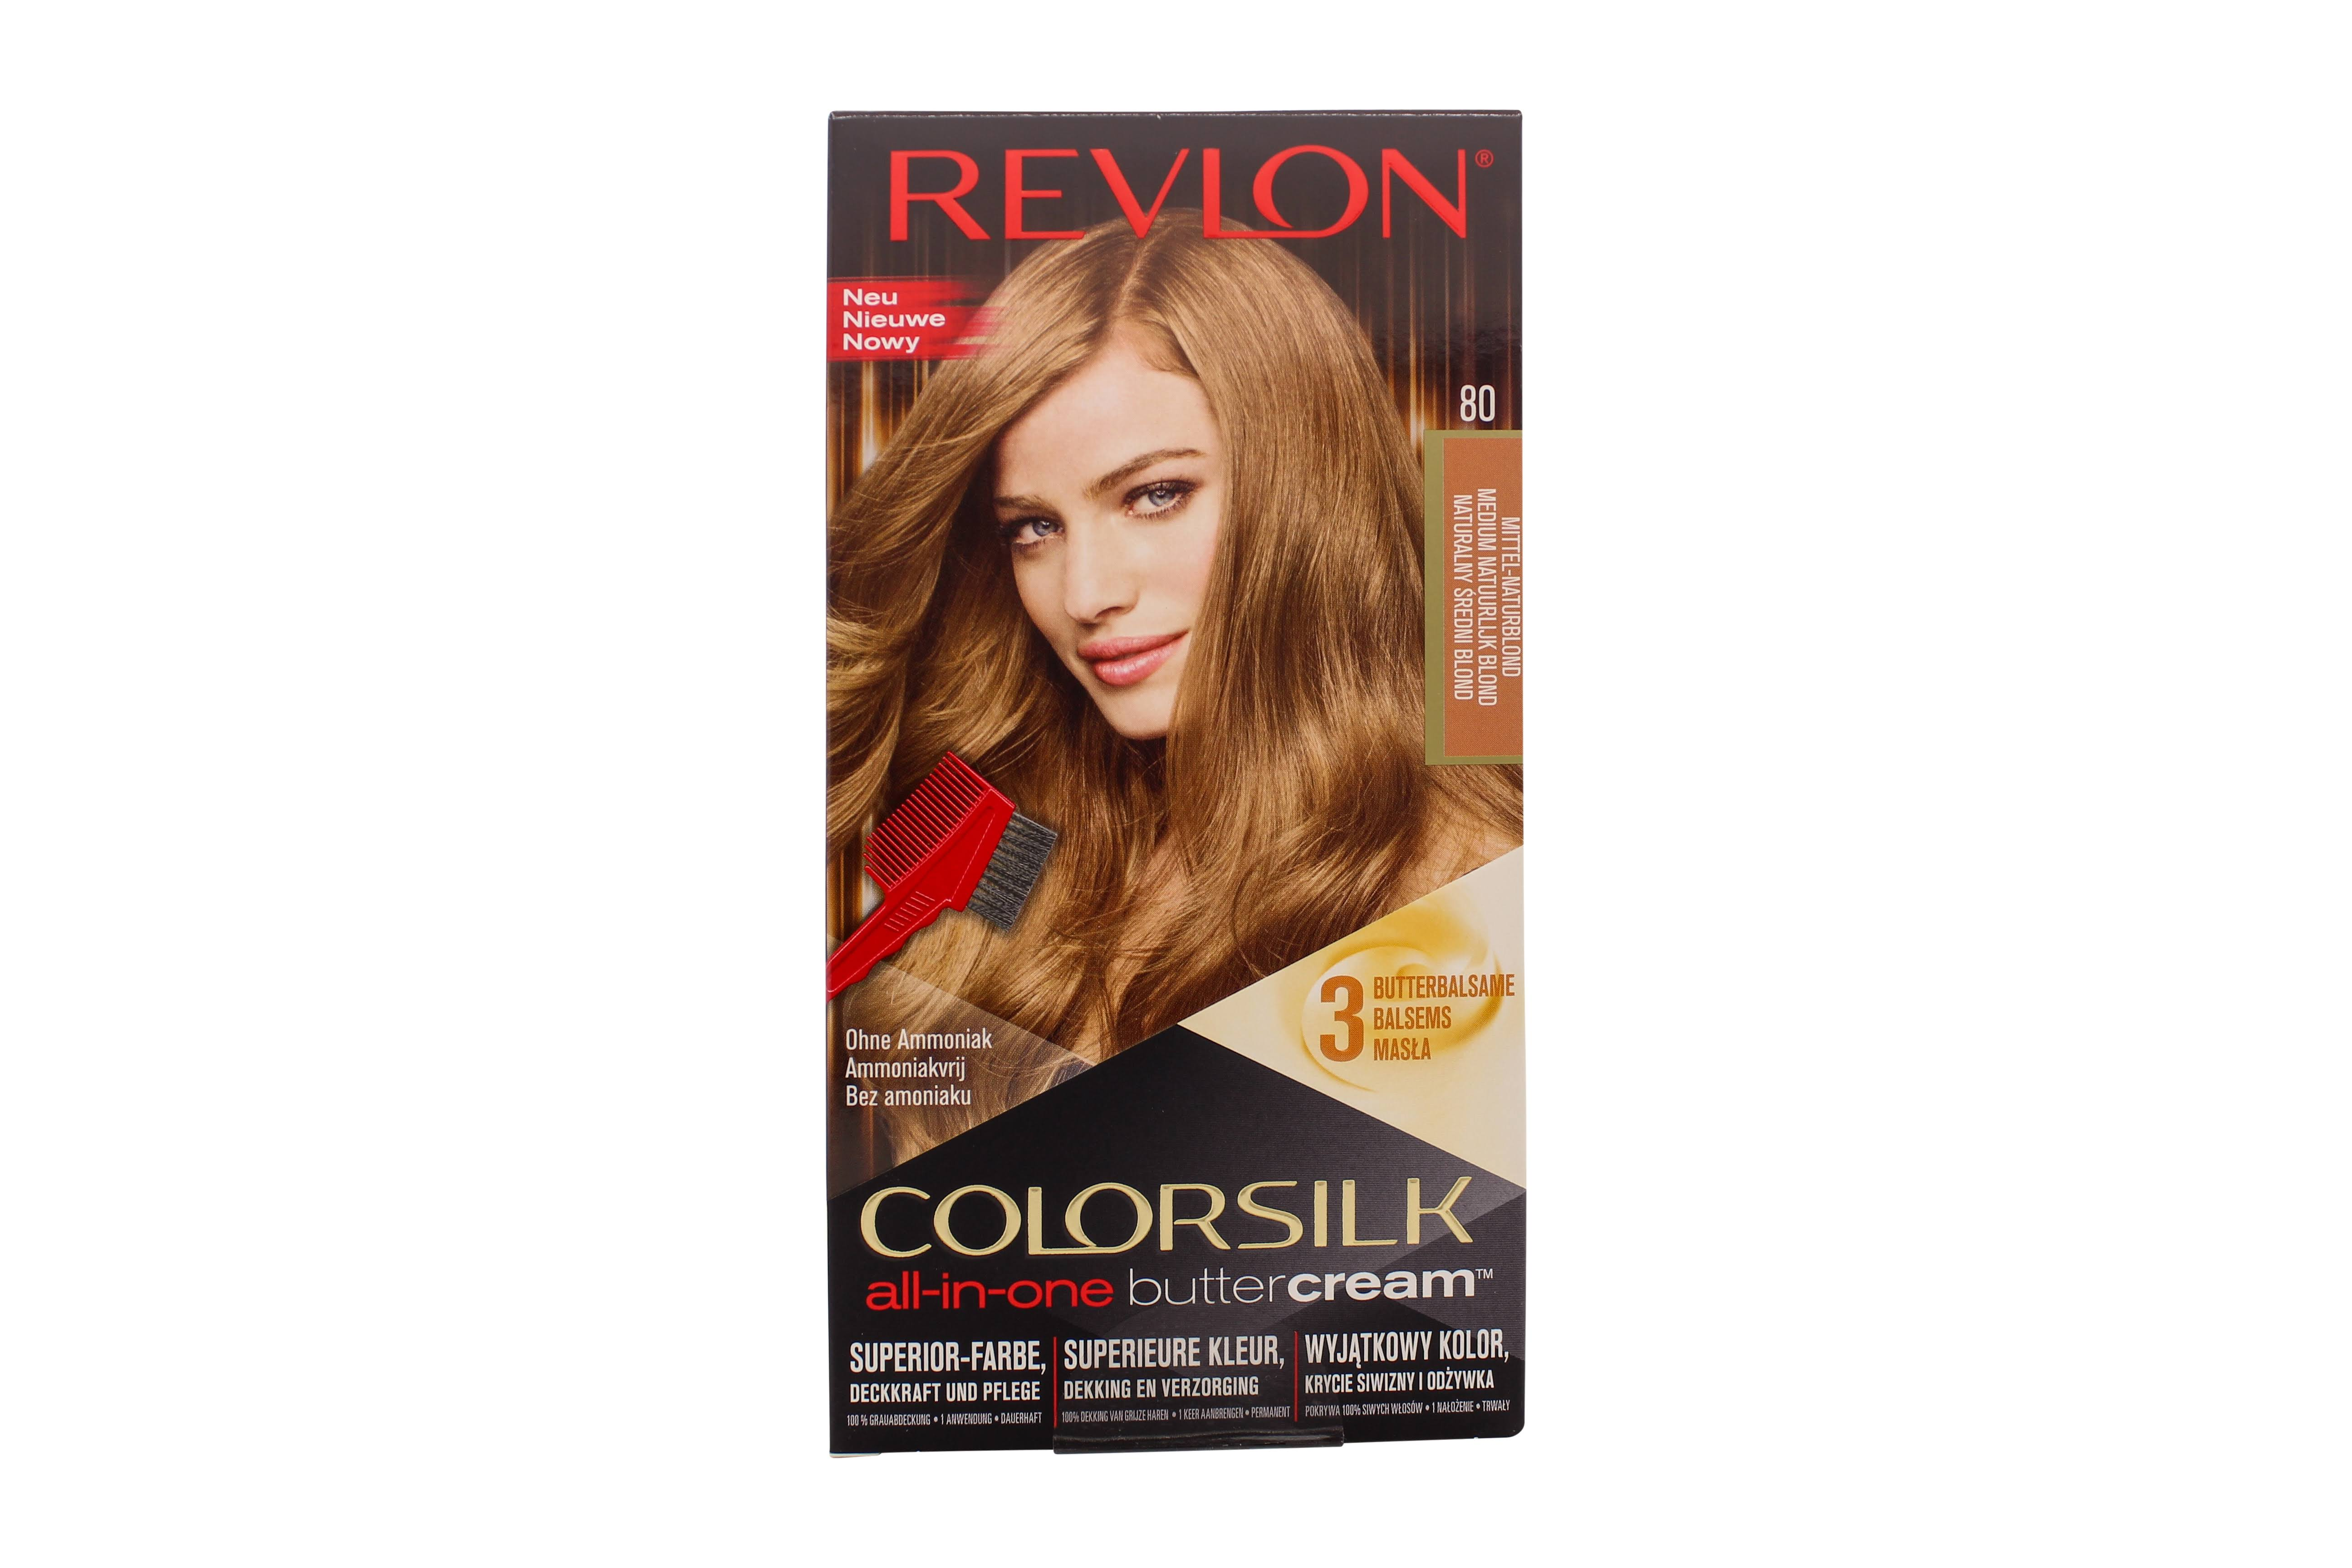 Revlon Colorsilk Buttercream Hair Color, Medium Natural Blonde, White